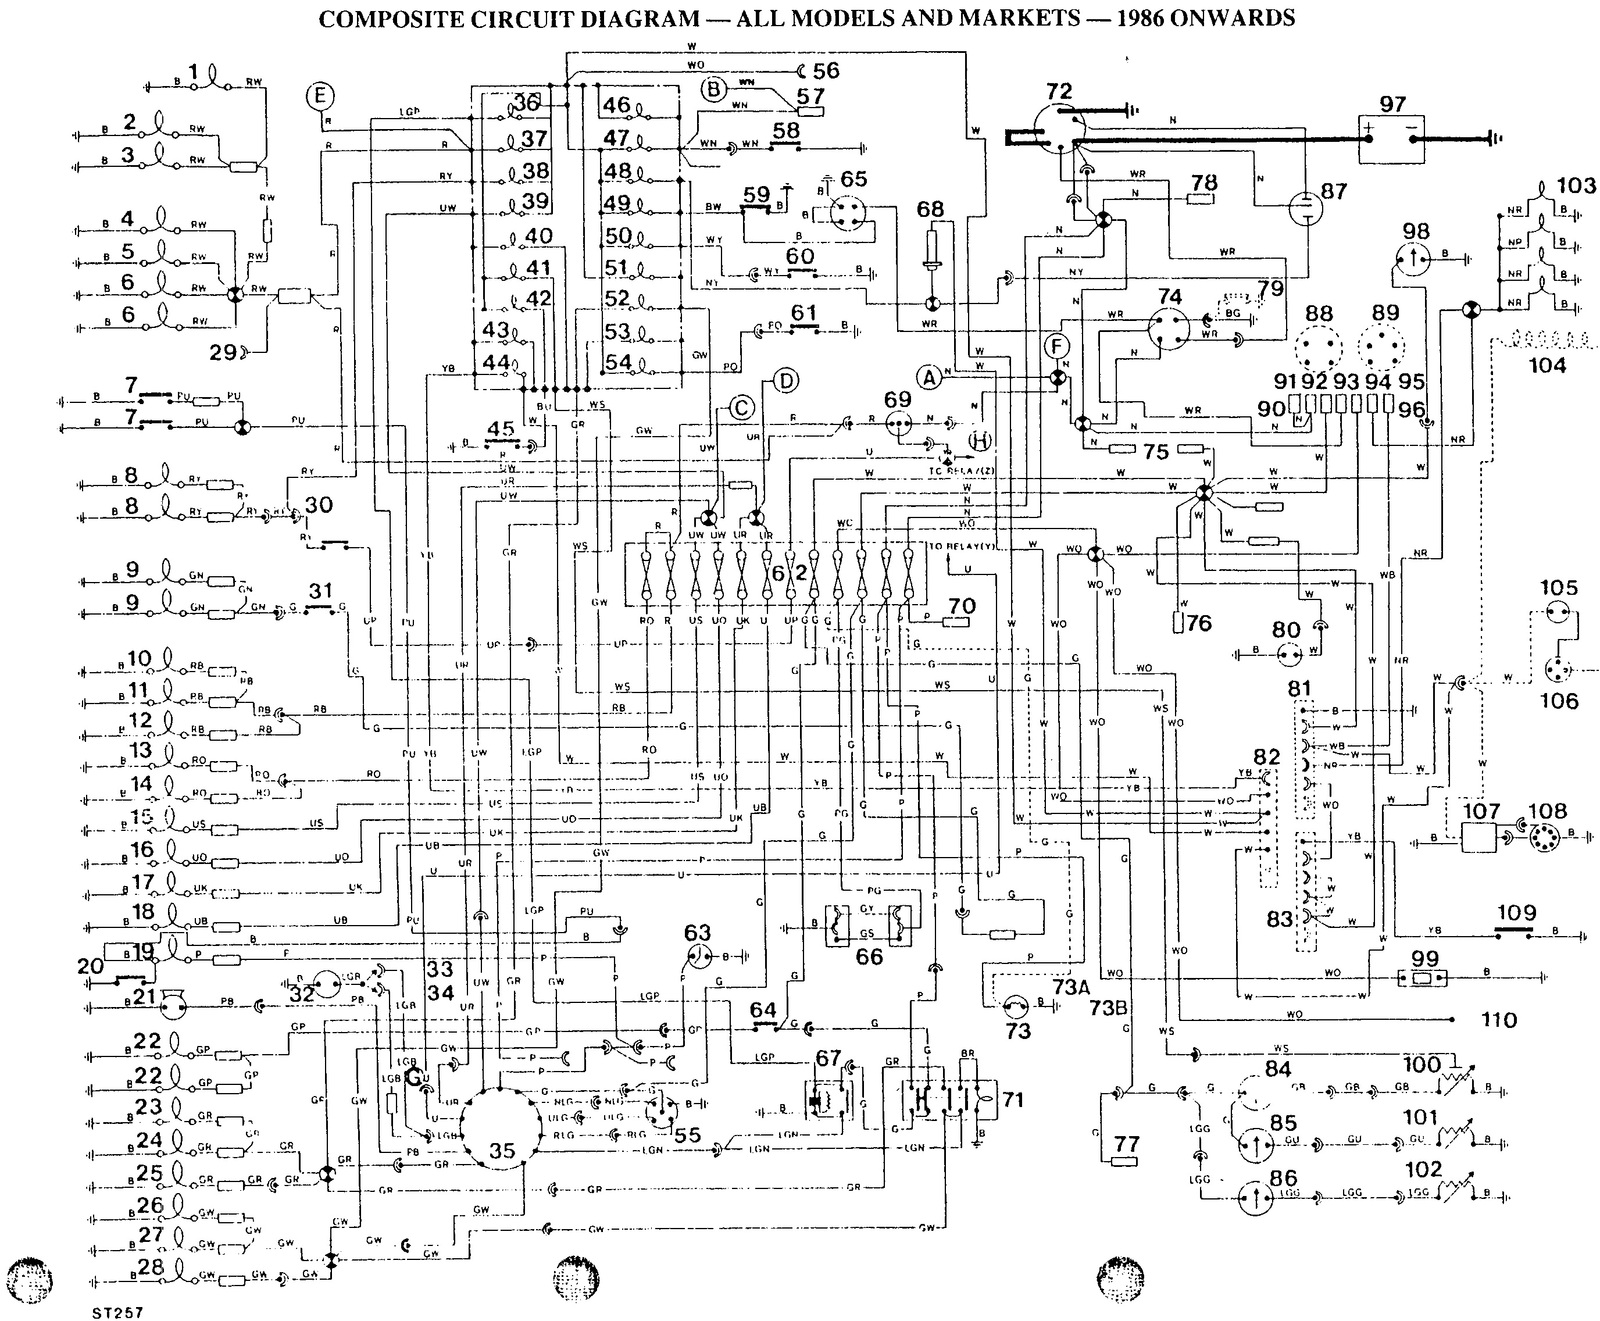 [WRG-0912] 2001 Land Rover Discovery Engine Diagram